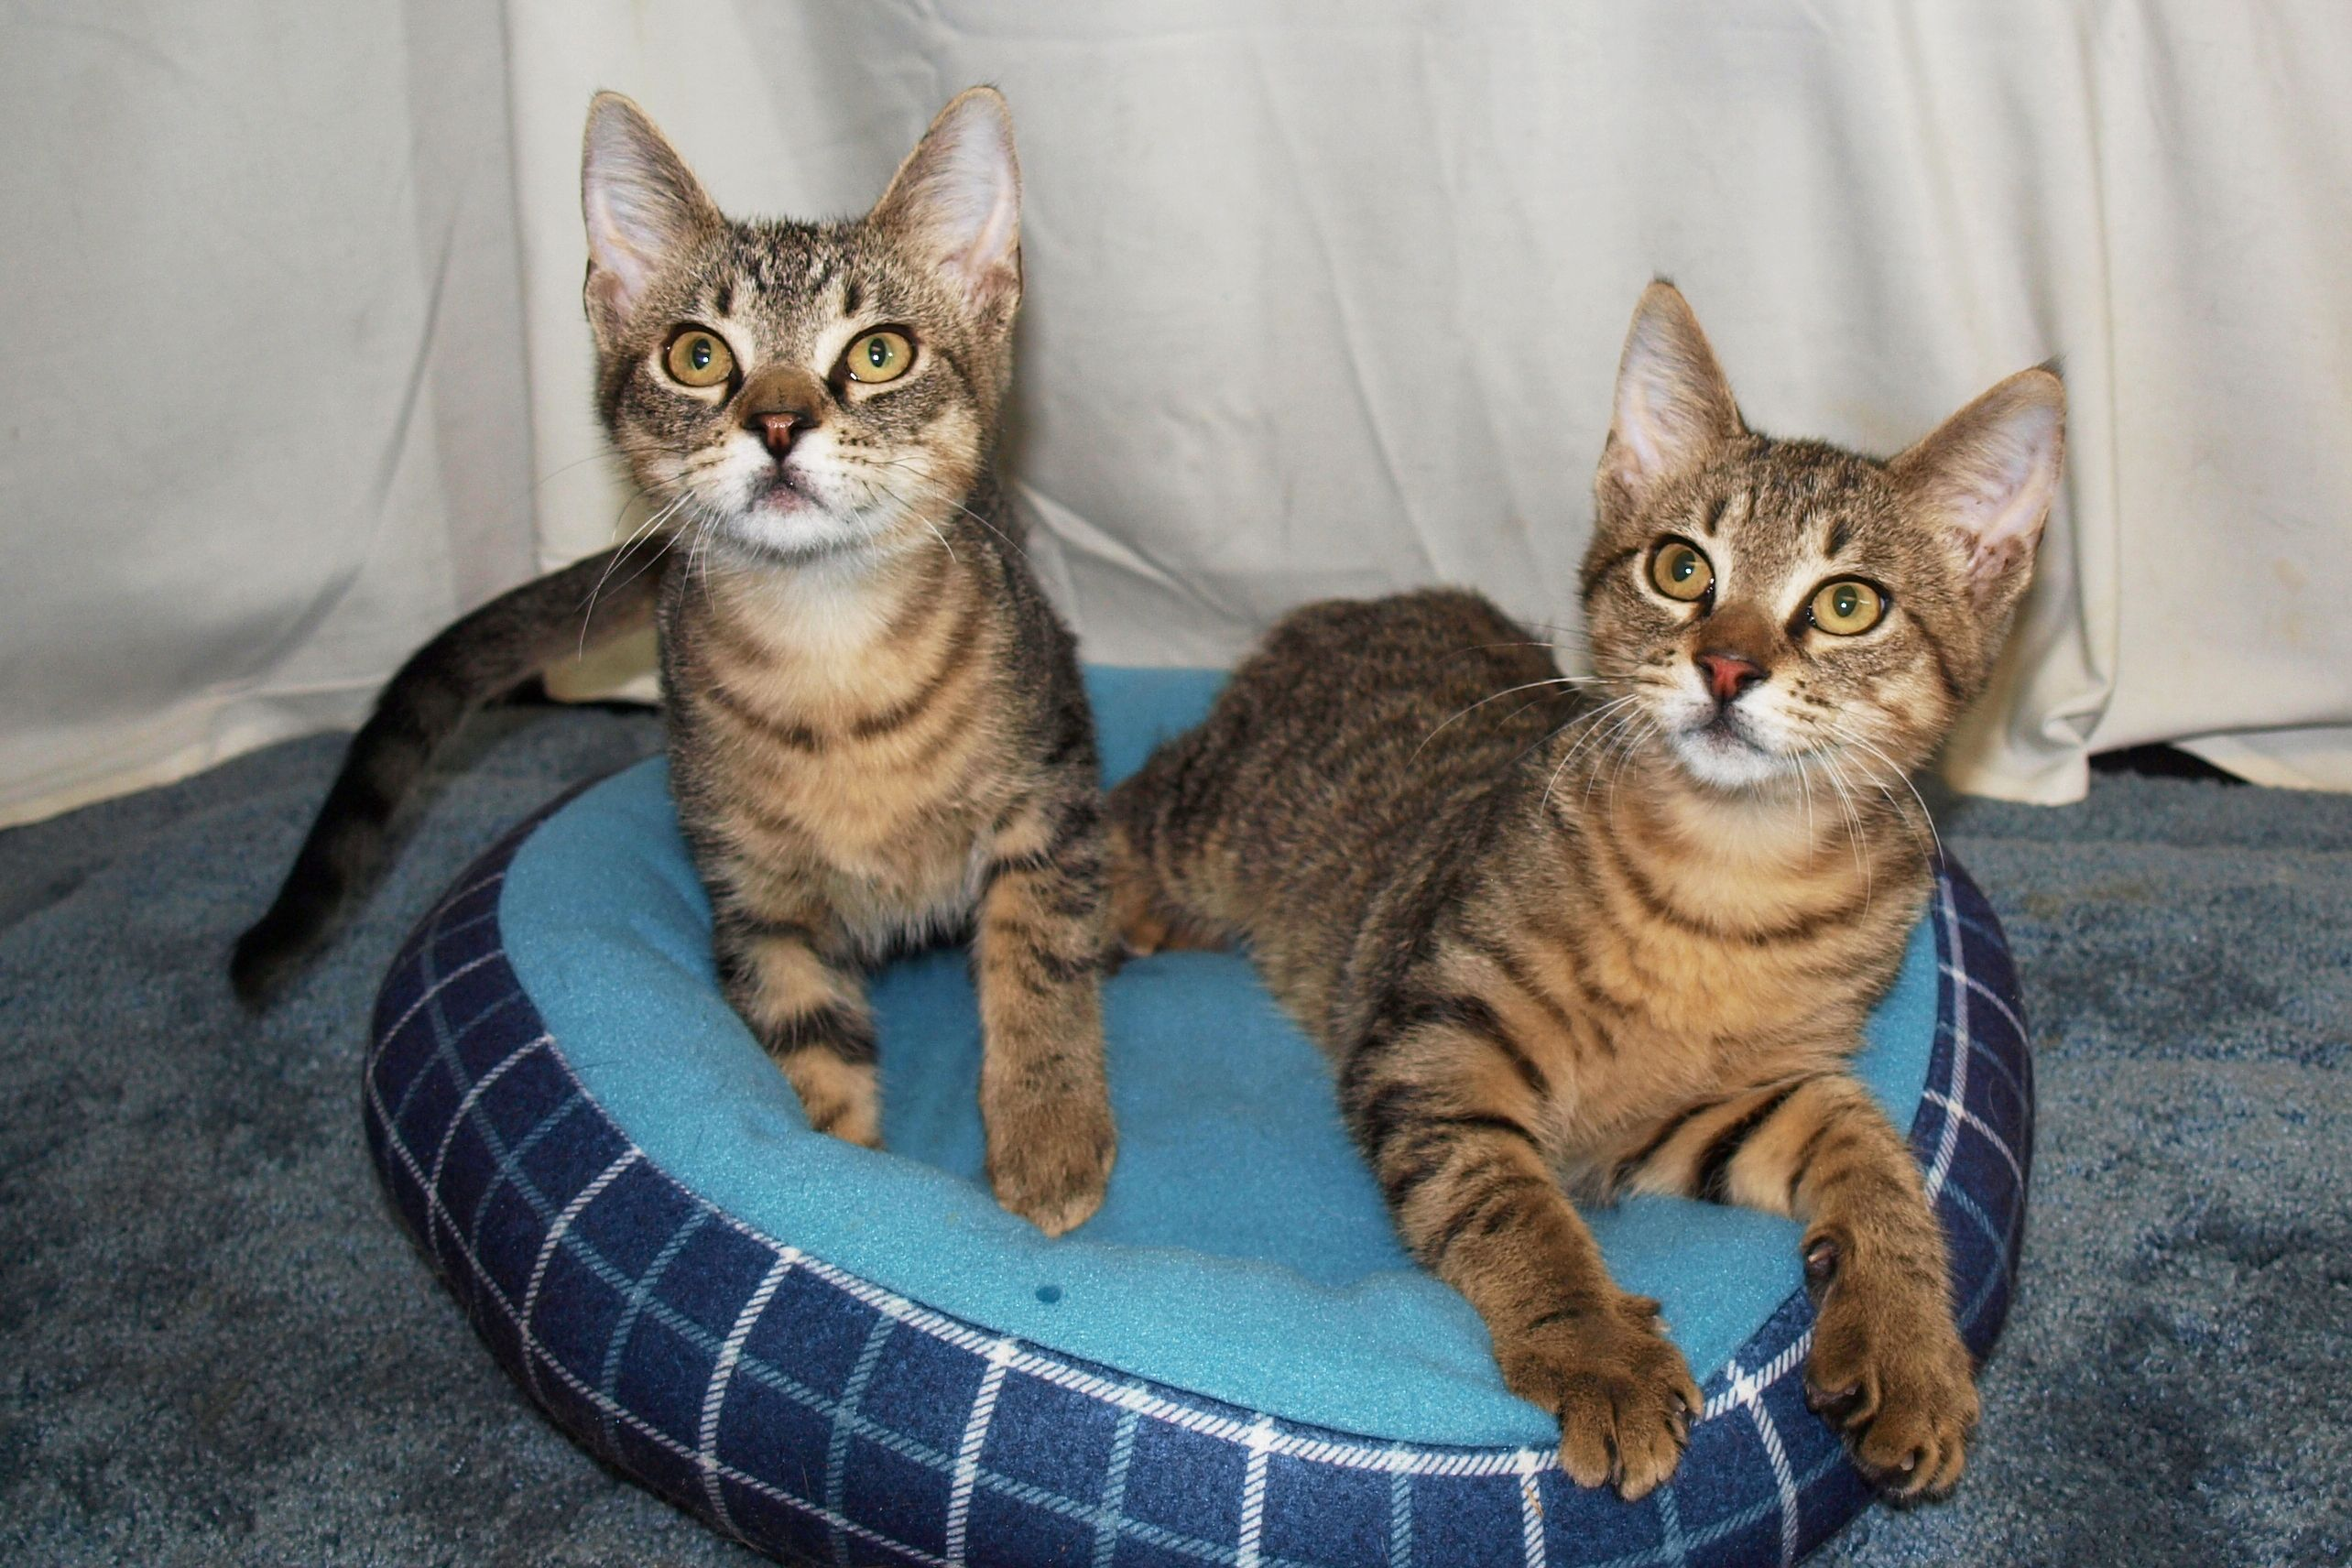 Cats of the Week    Pedro (l) and Bobo (r) are male domestic short-hair litter mates who are about 14 weeks old. They were found in an old, rusted car and brought to CARA. Having been bottle fed at our Cattery Manager's home, they are now very affectionate and loving.    OMG, if I didn't already have two sweet baby boys, I'd have to let these two snuggle bunnies run my house!! Ooooooh they're so cute!